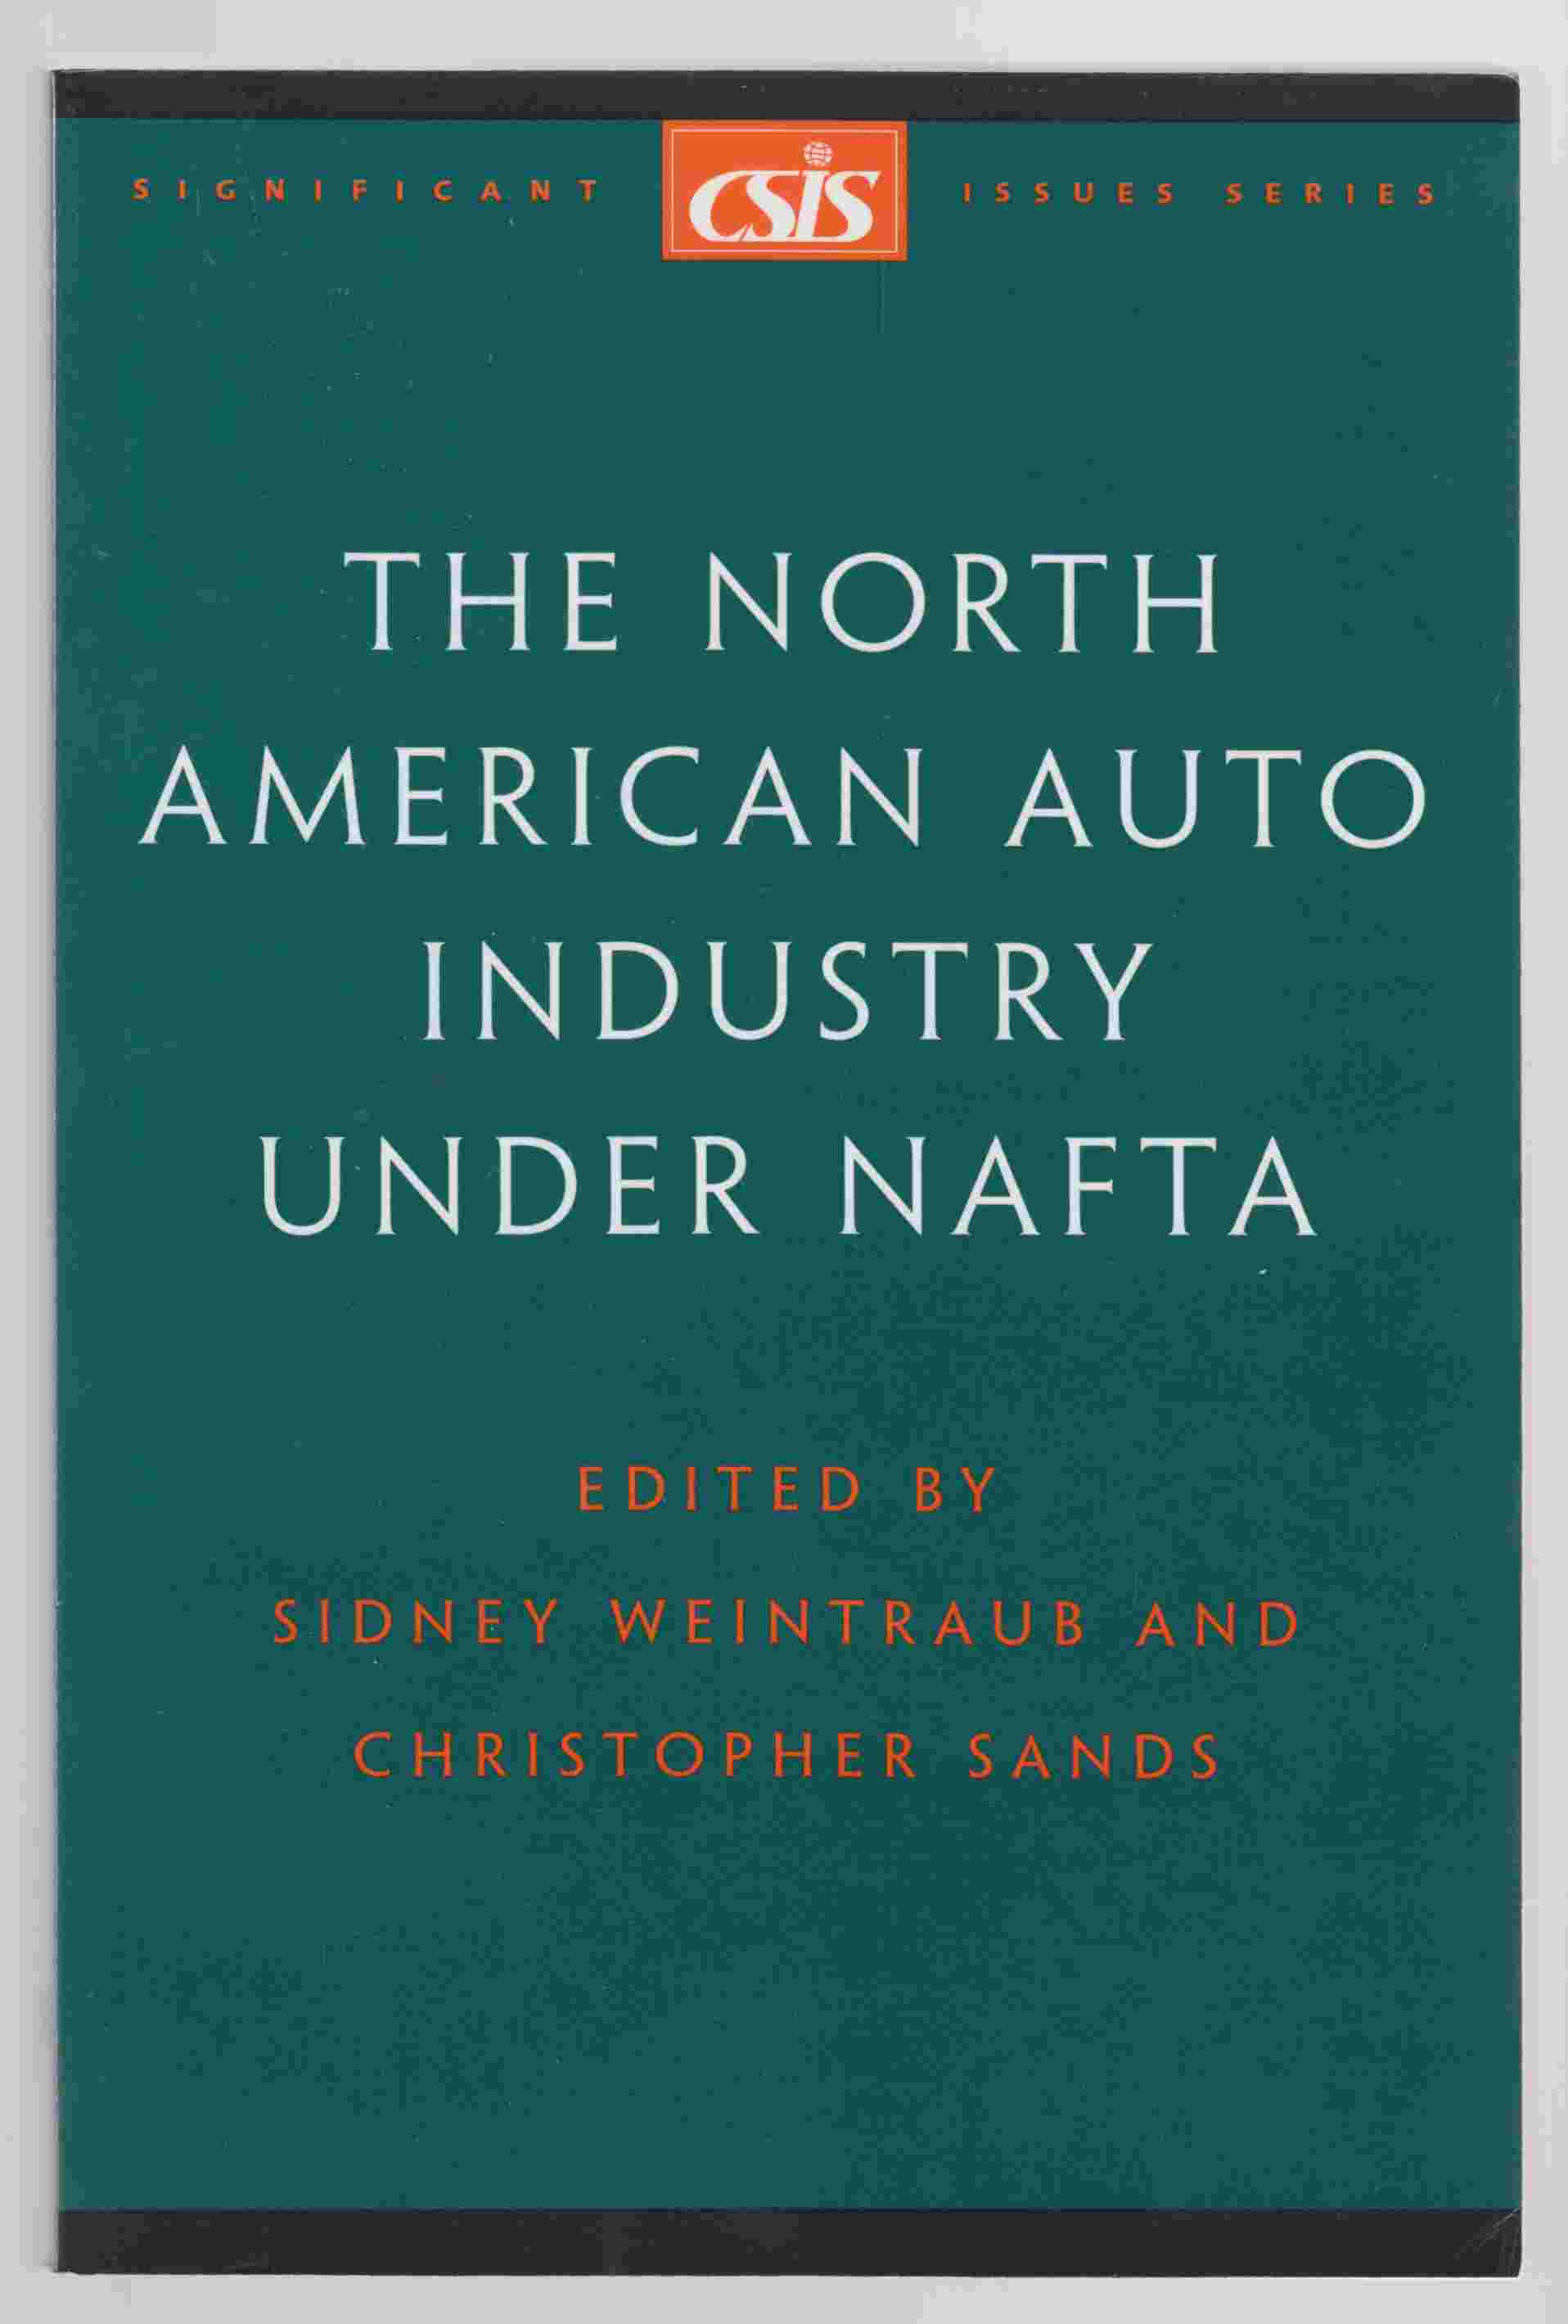 Image for The North American Auto Industry under NAFTA